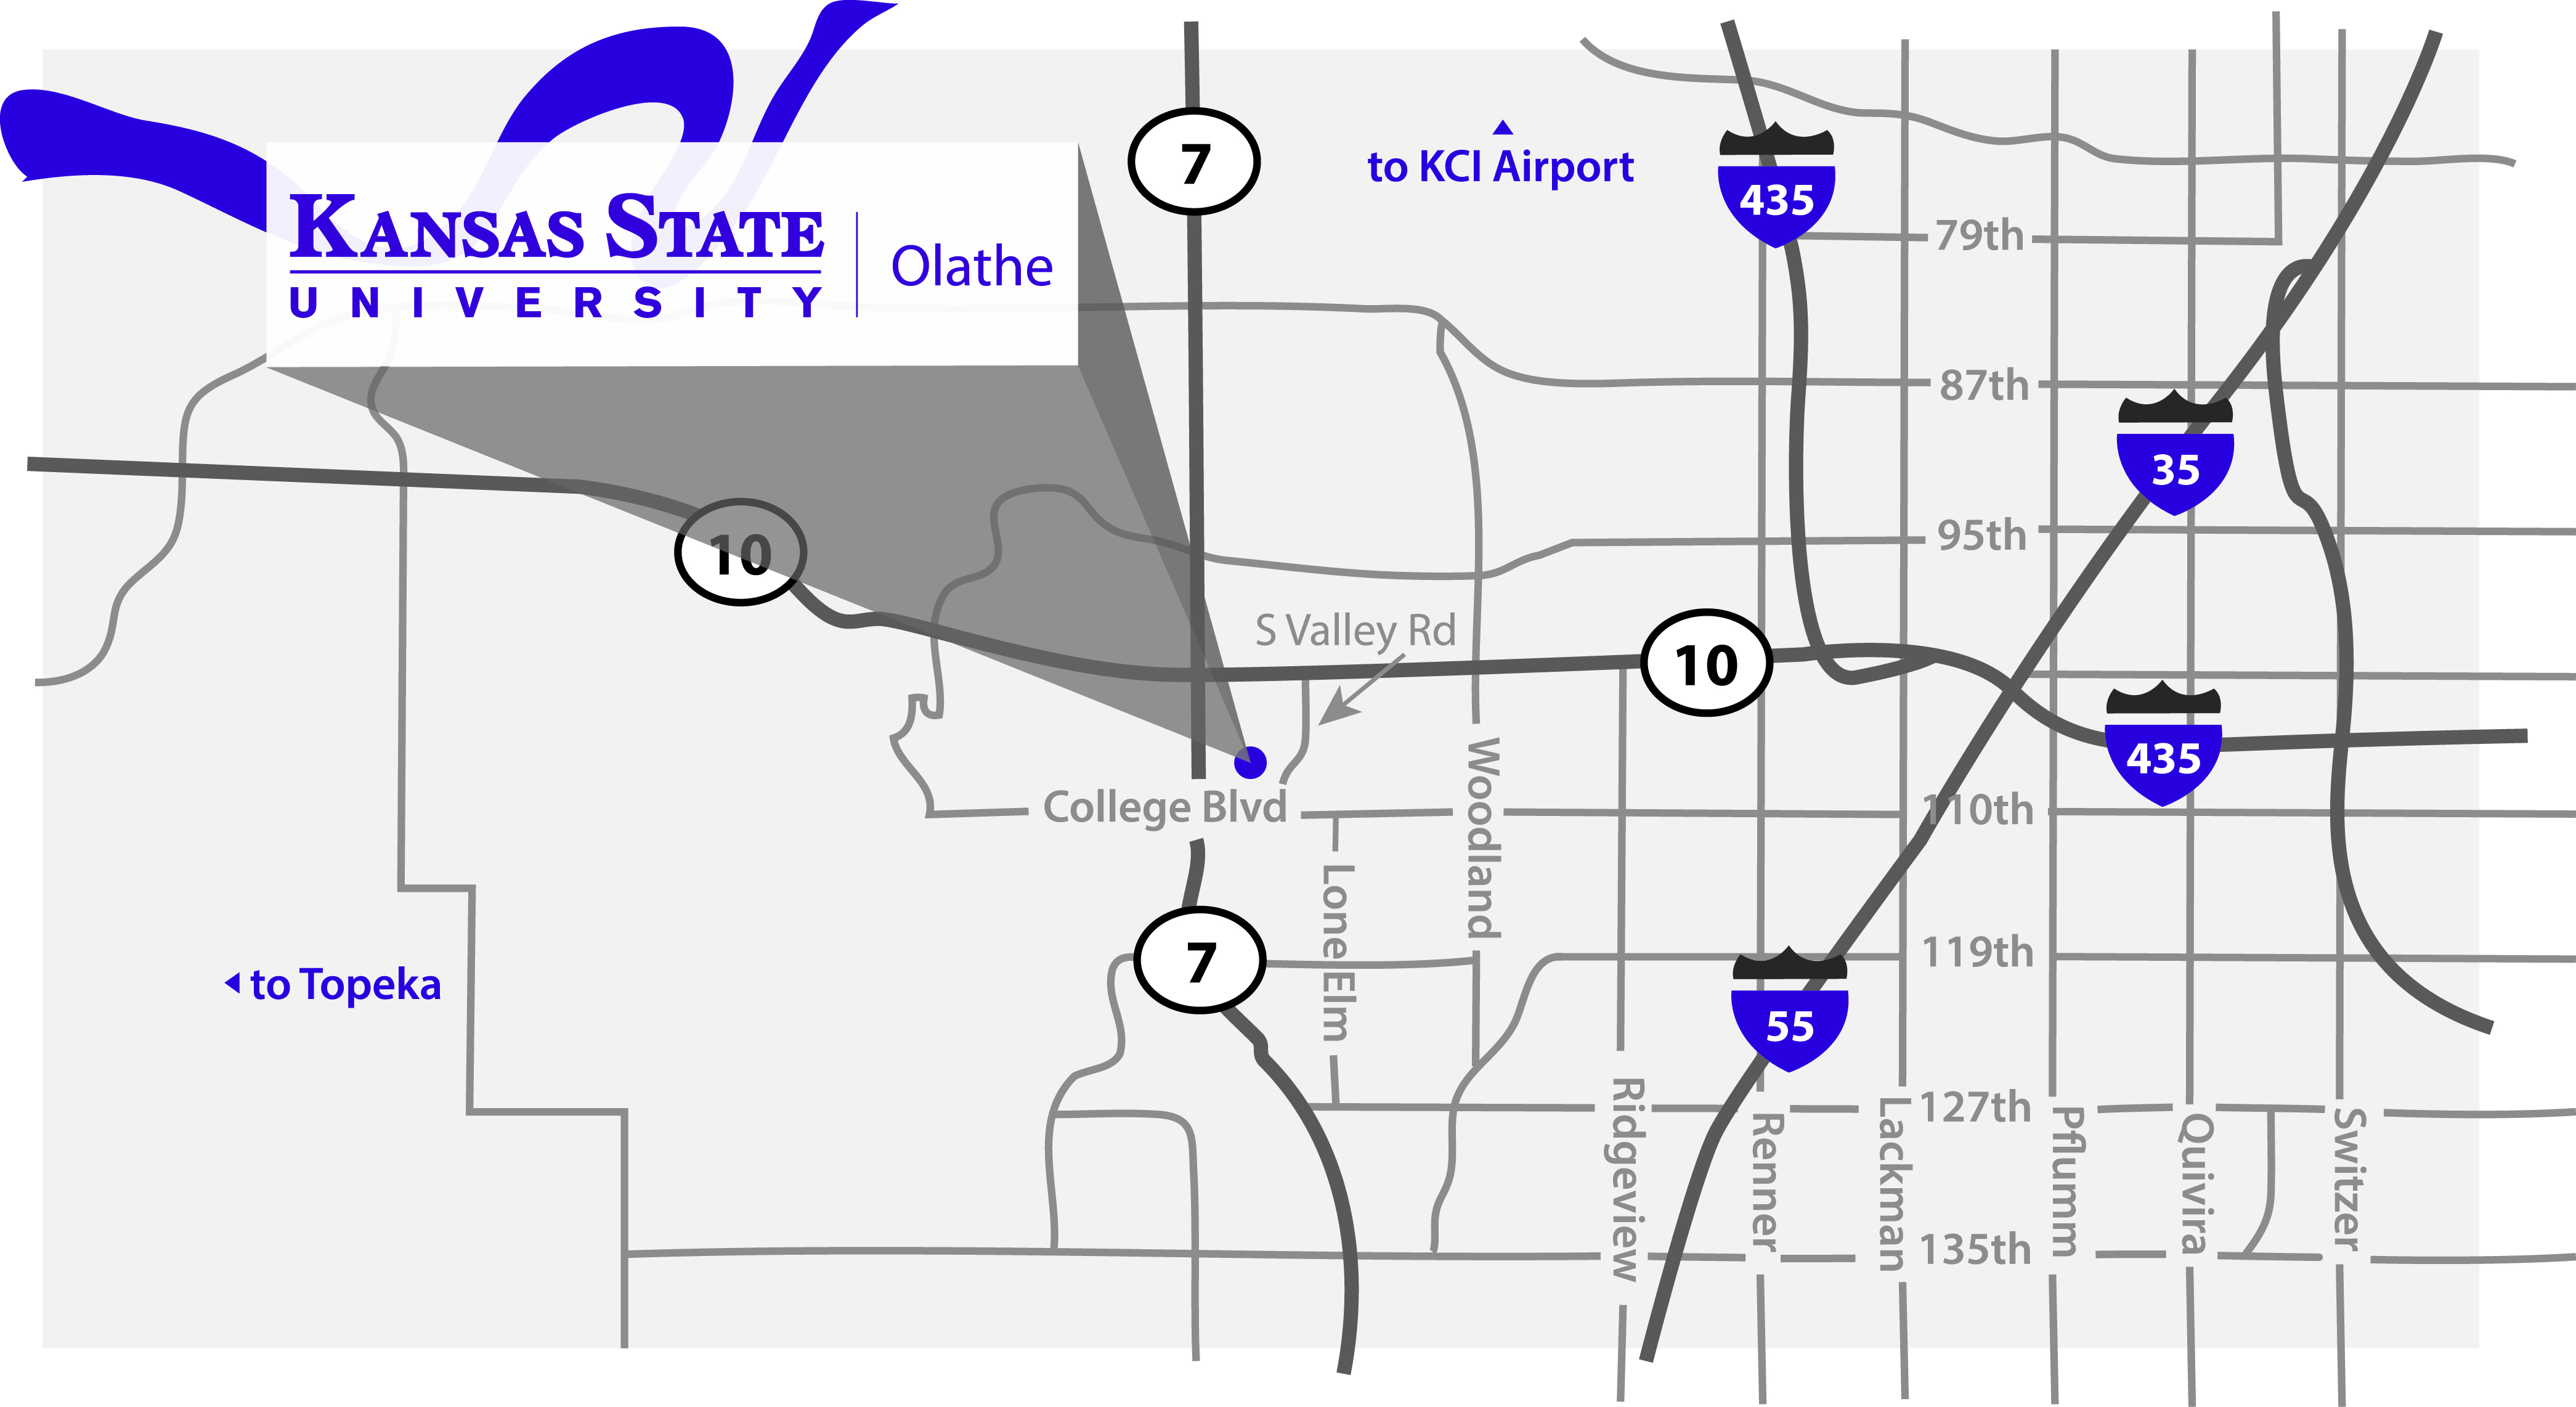 Where is K-State Olathe located? | K-State Olathe on university of colorado hospital campus map, ksu campus map, plymouth state university parking map, columbus state community college parking map, kansas state fair parking map, ferris state university parking map, wayne state university parking map, truman state university parking map, kansas state university font, kansas state university mapquest, weber state university parking map, kansas state university stadium seating chart, michigan parking map, kumc hospital map, san jose state university parking map, foothill college parking map, kansas state university police, kansas state univerty map, kansas state university history, cleveland state university parking map,